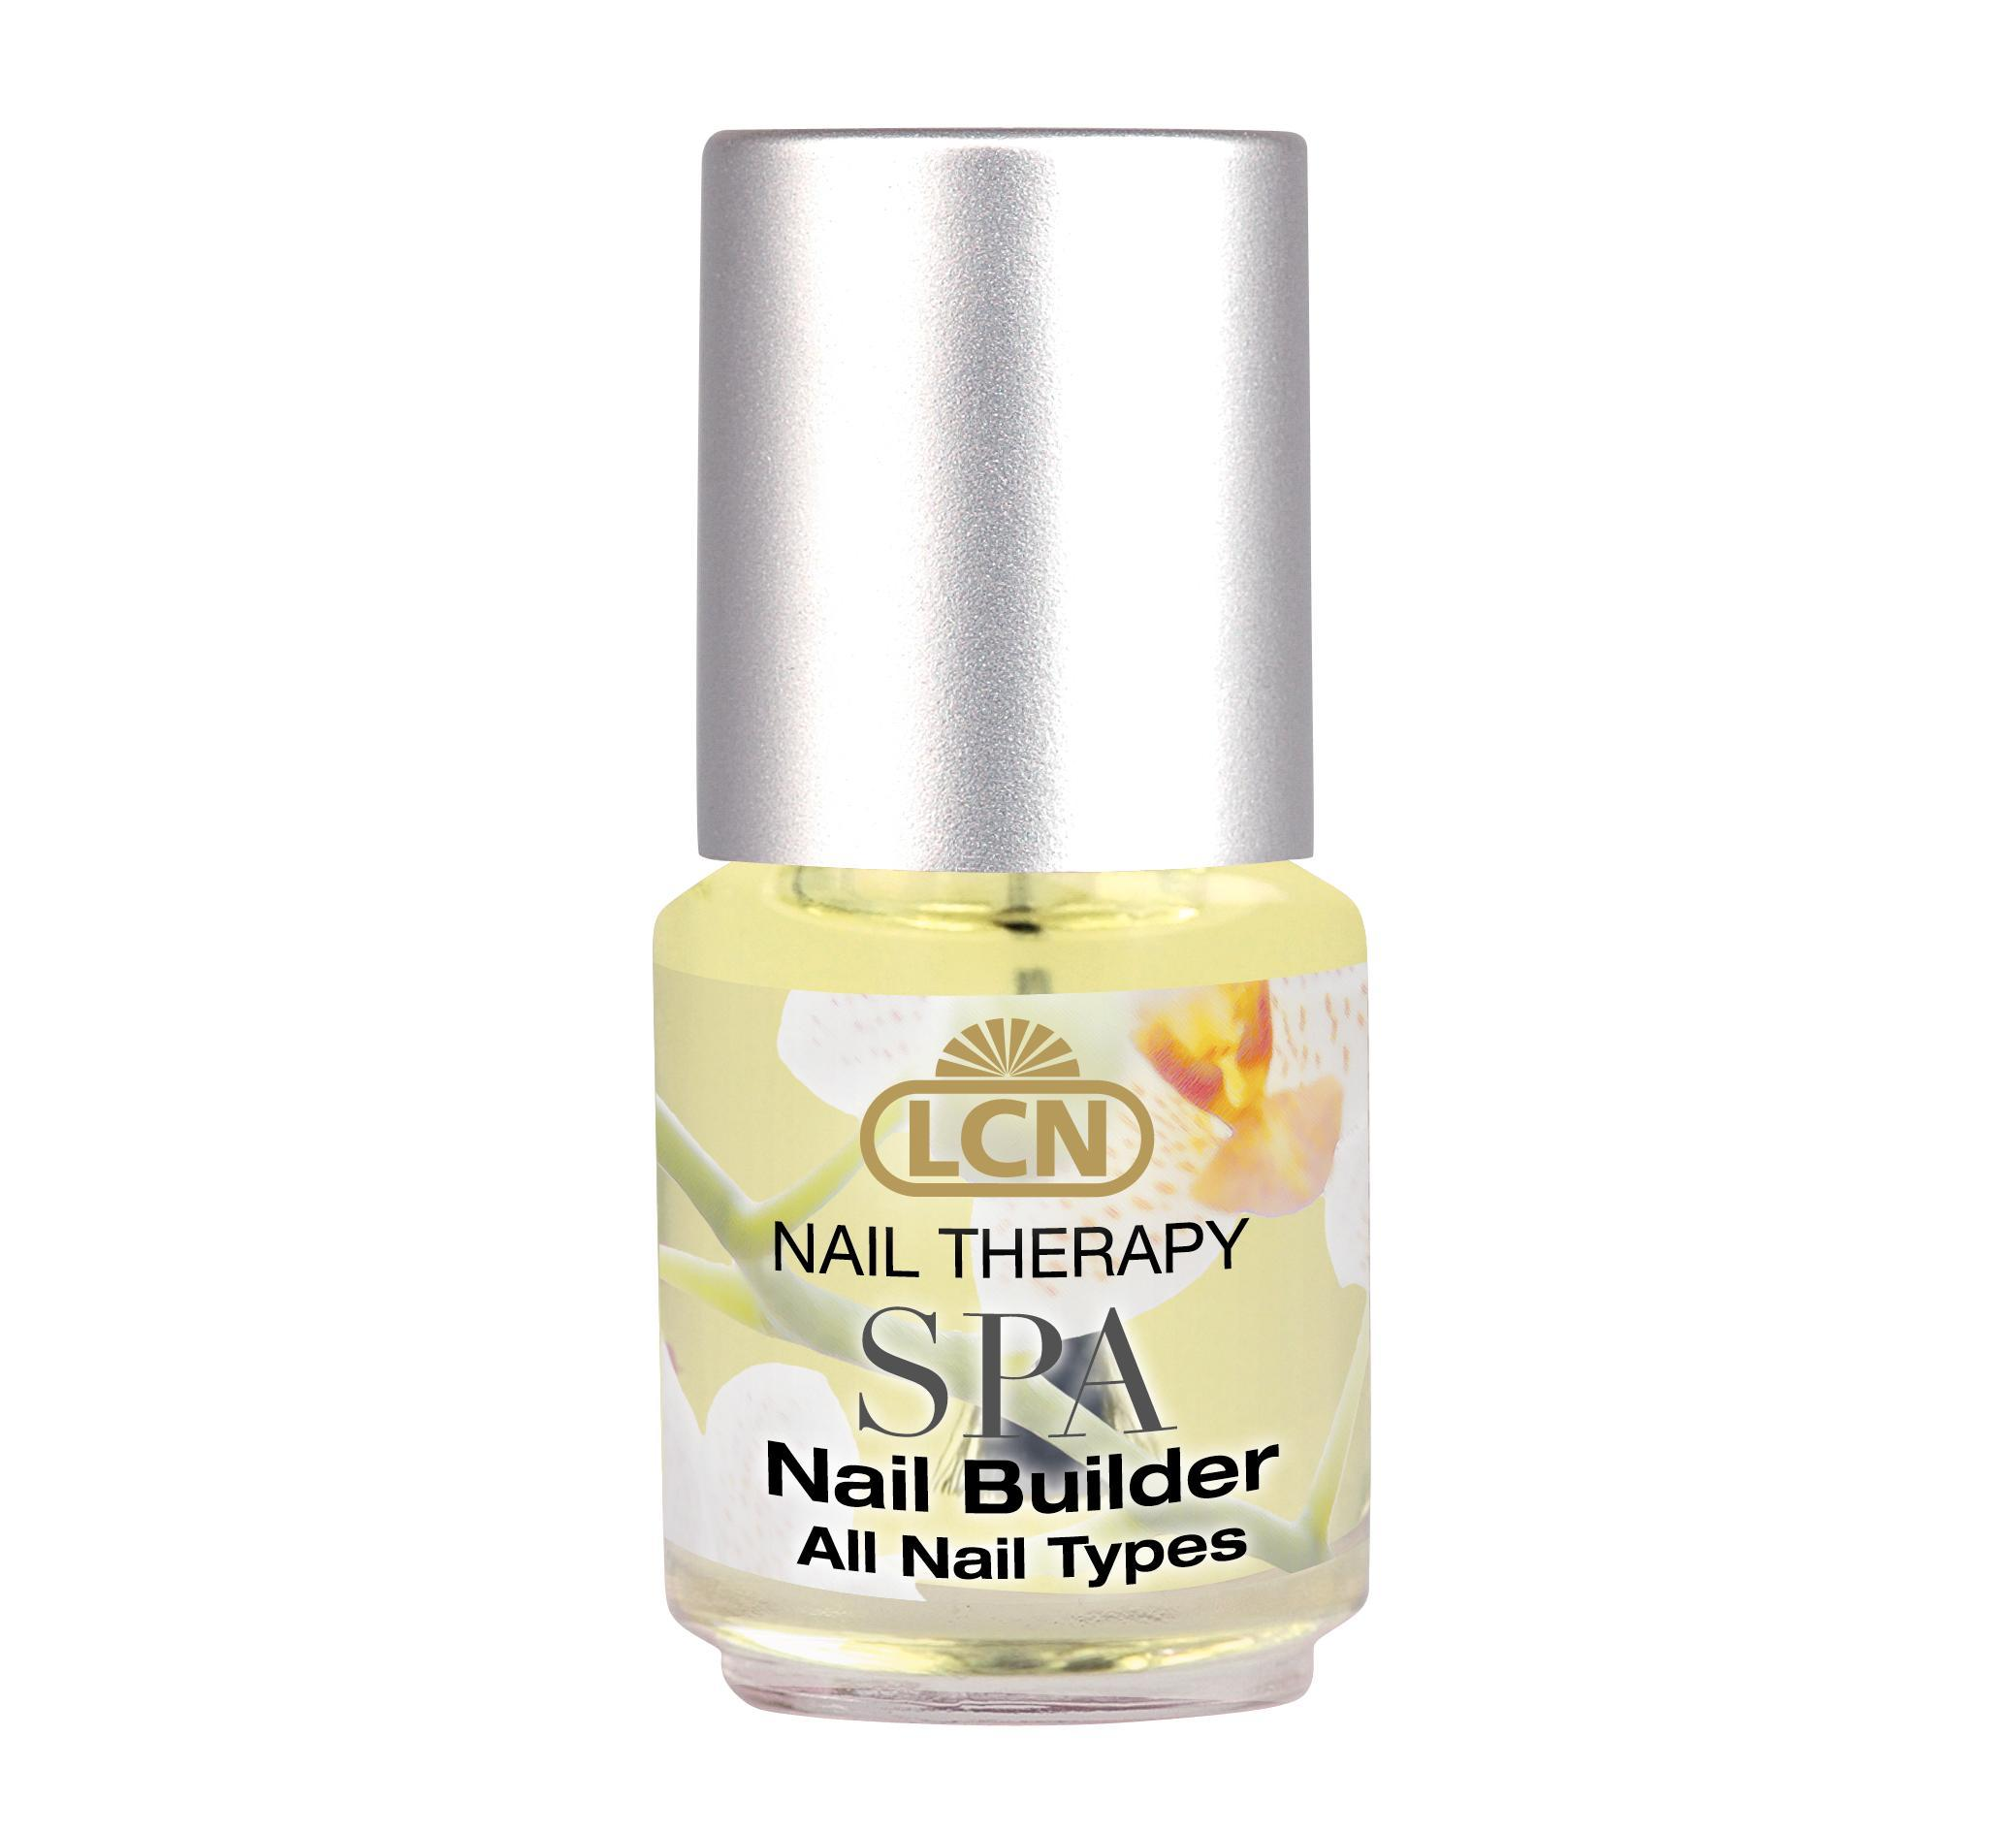 SPA Nail Therapy Nail Builder, all nail types